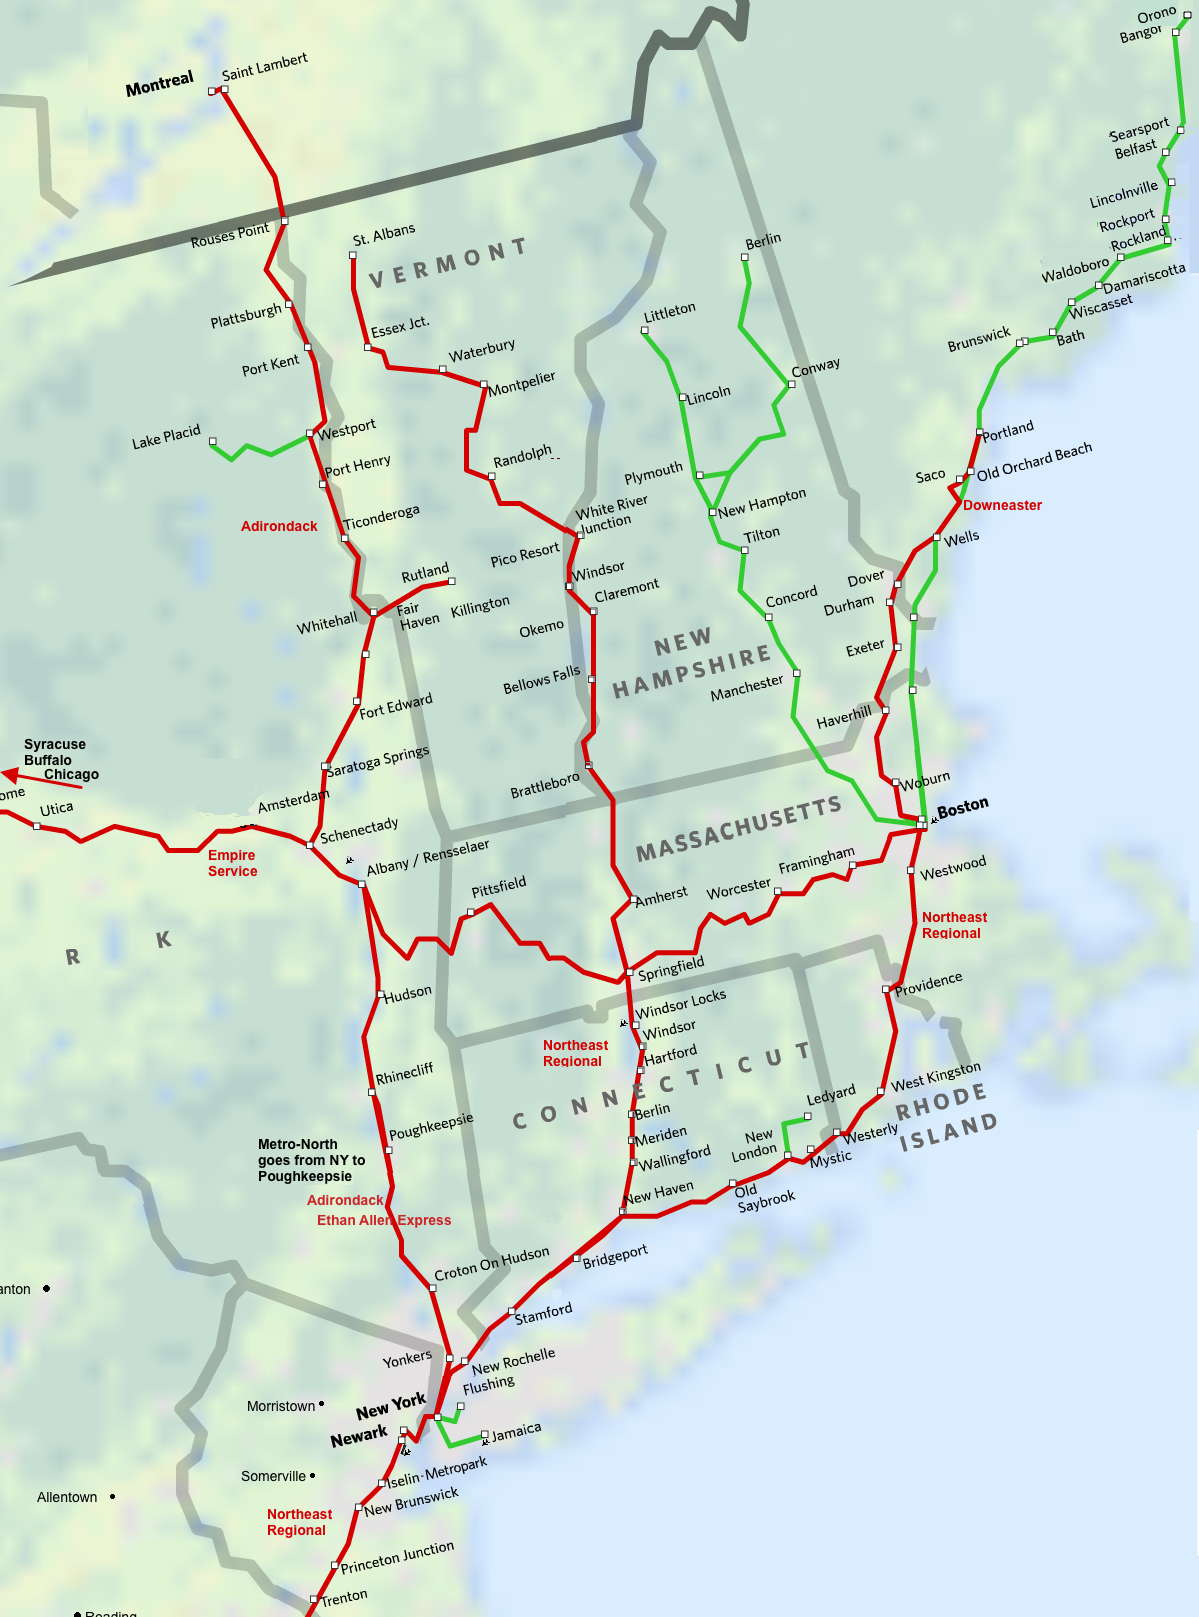 North East New England Amtrak Route Map Super Easy Way To Get To - Amtrak map of routes in us